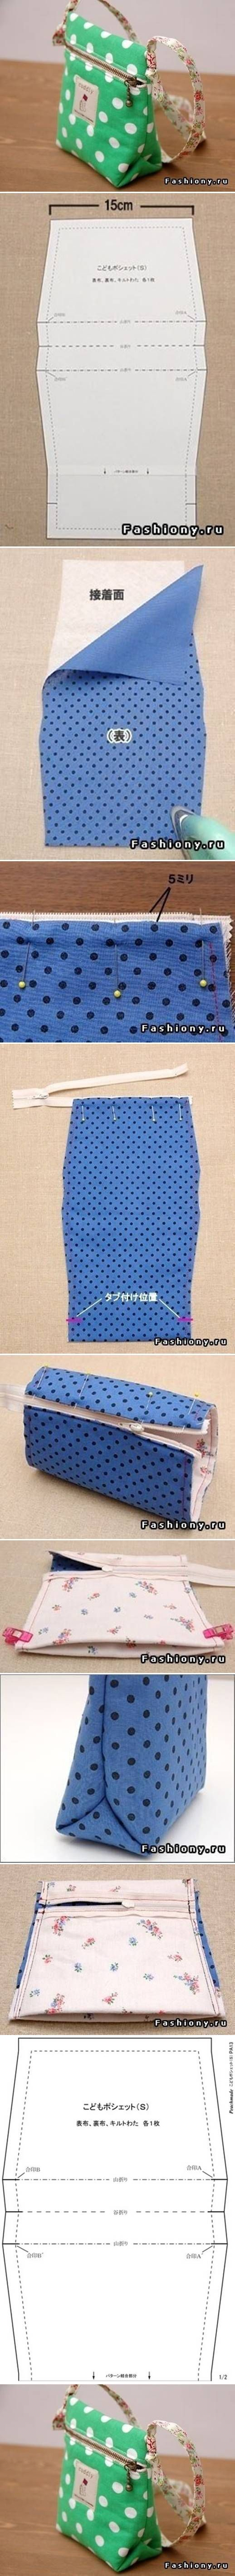 DIY Small Sew Handbag DIY Projects | UsefulDIY.com Follow Us on Facebook ==> http://www.facebook.com/UsefulDiy